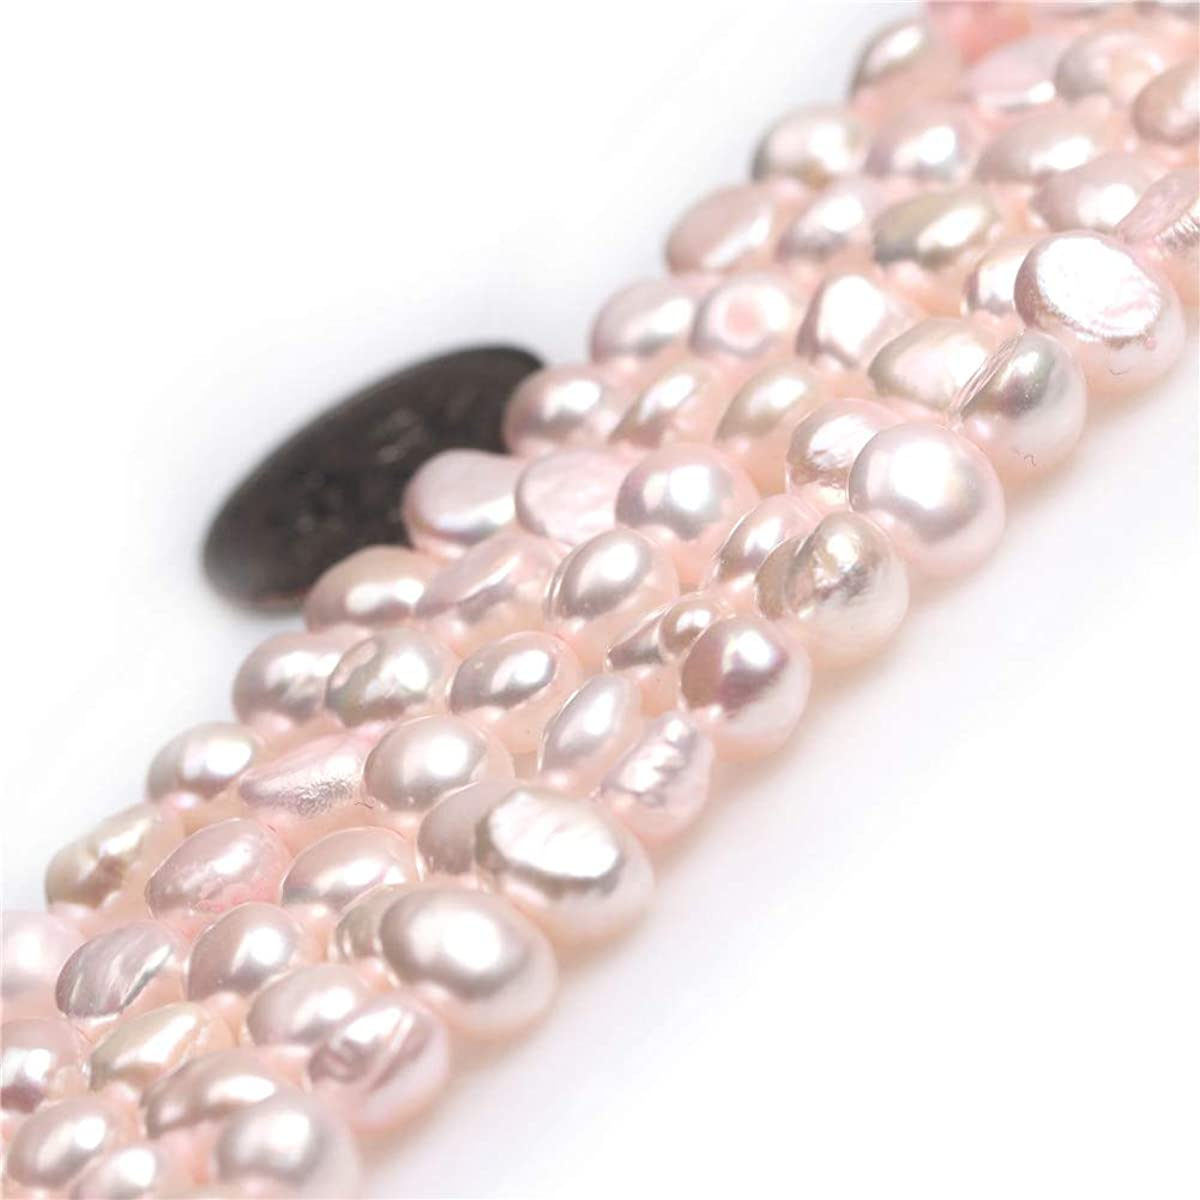 Freshwater Cultured Pearl Beads for Jewelry Making Gemstone Semi Precious 6-7mm Freeform Pink Color 15